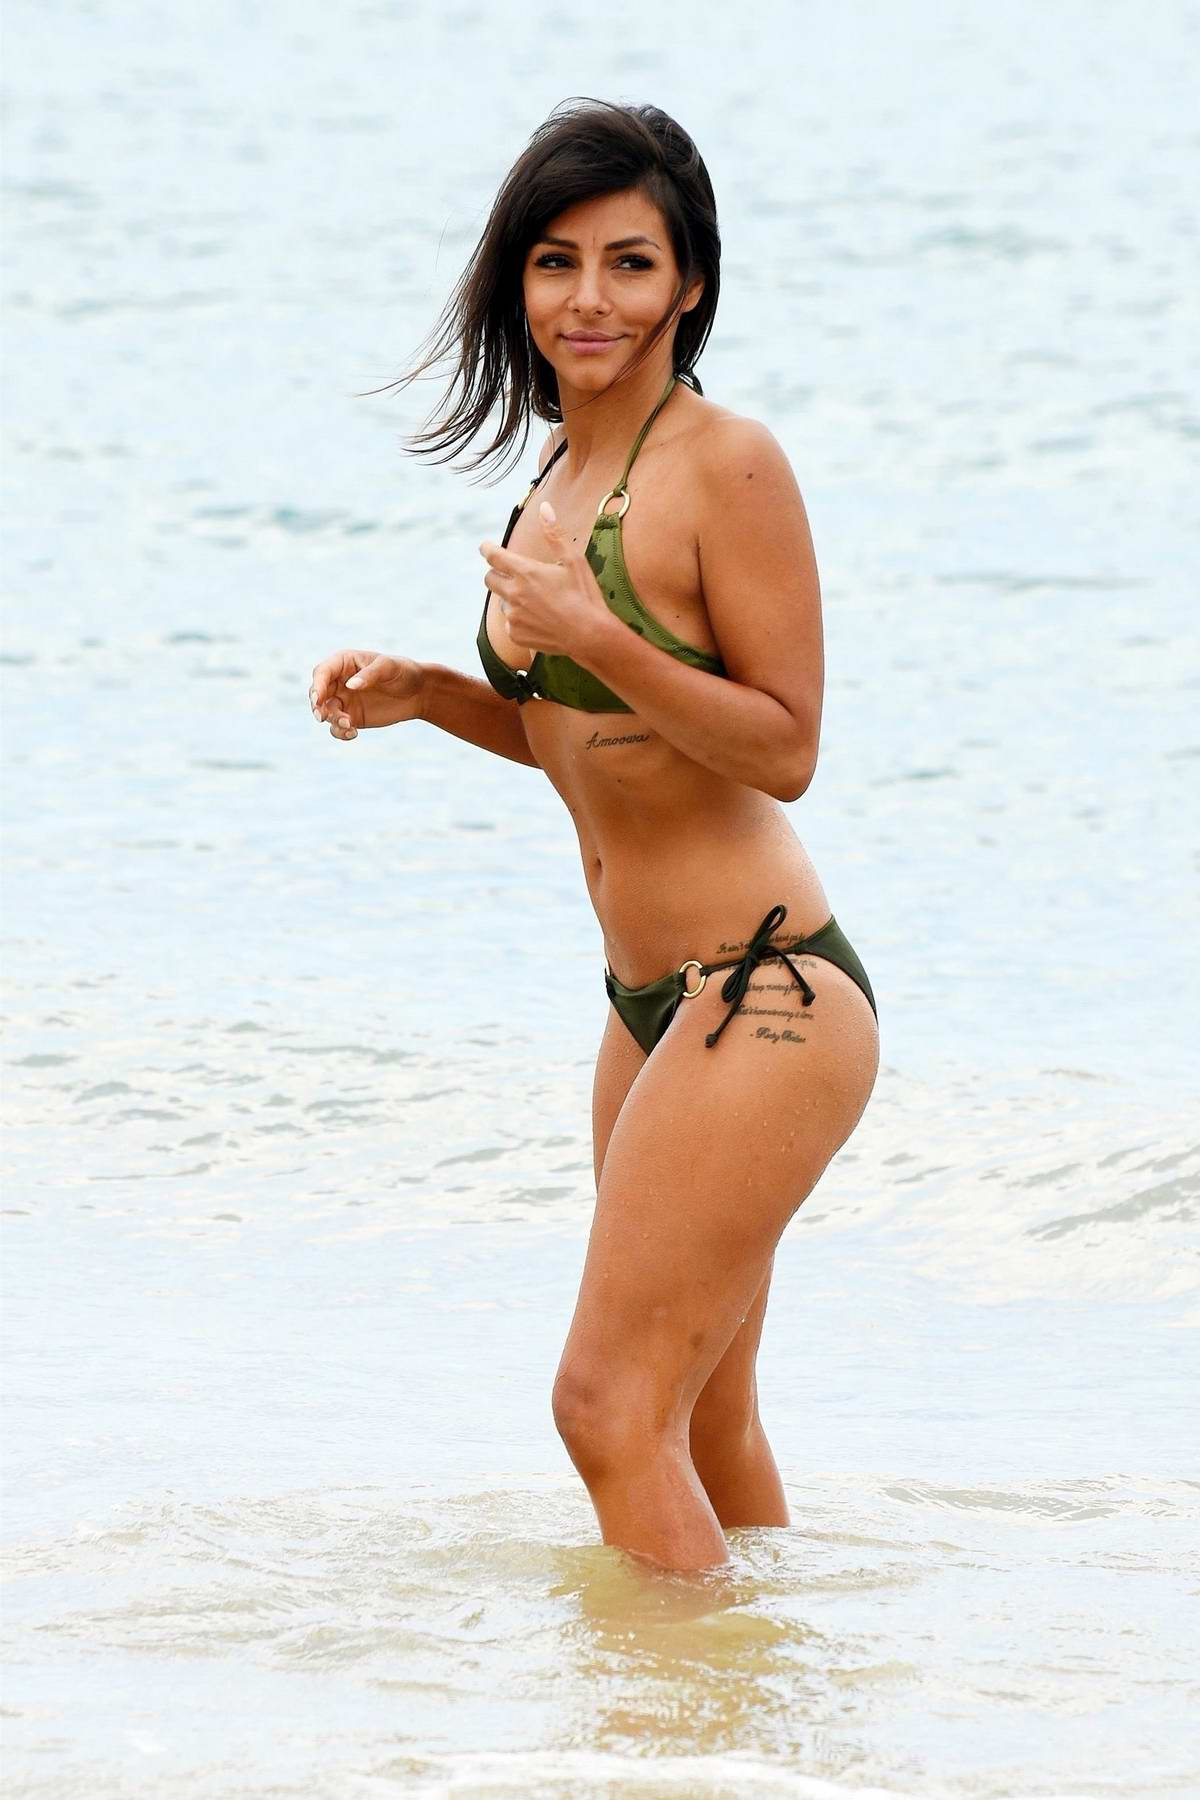 Roxanne Pallett enjoys the ocean in a green bikini while on holiday in Greece